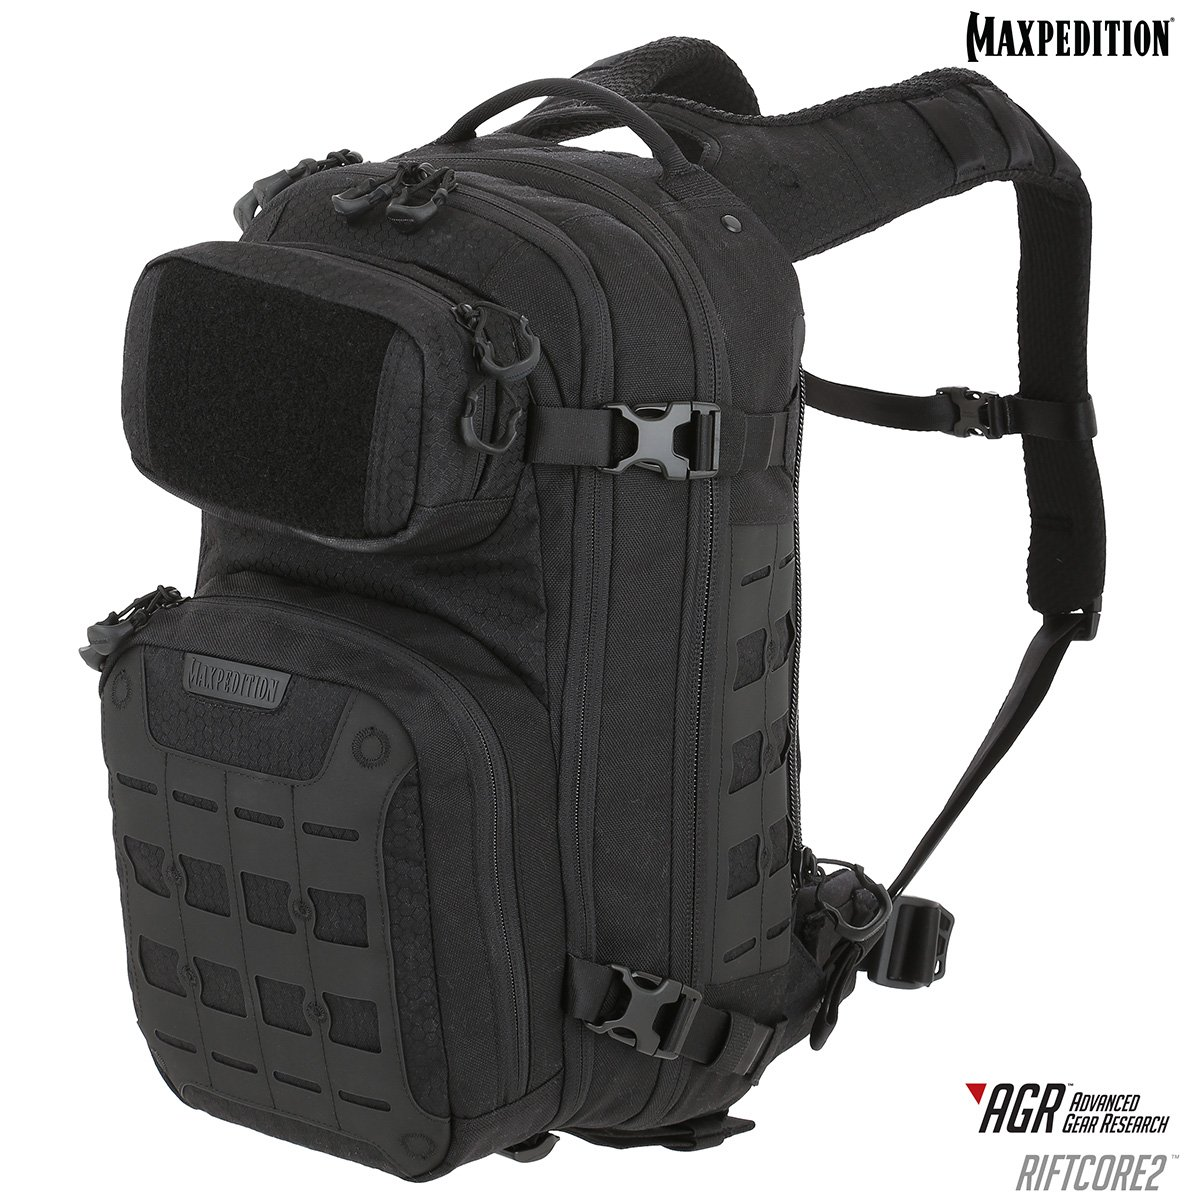 Balo Maxpedition Riftcore v2.0 CCW-Enabled 23L – Black